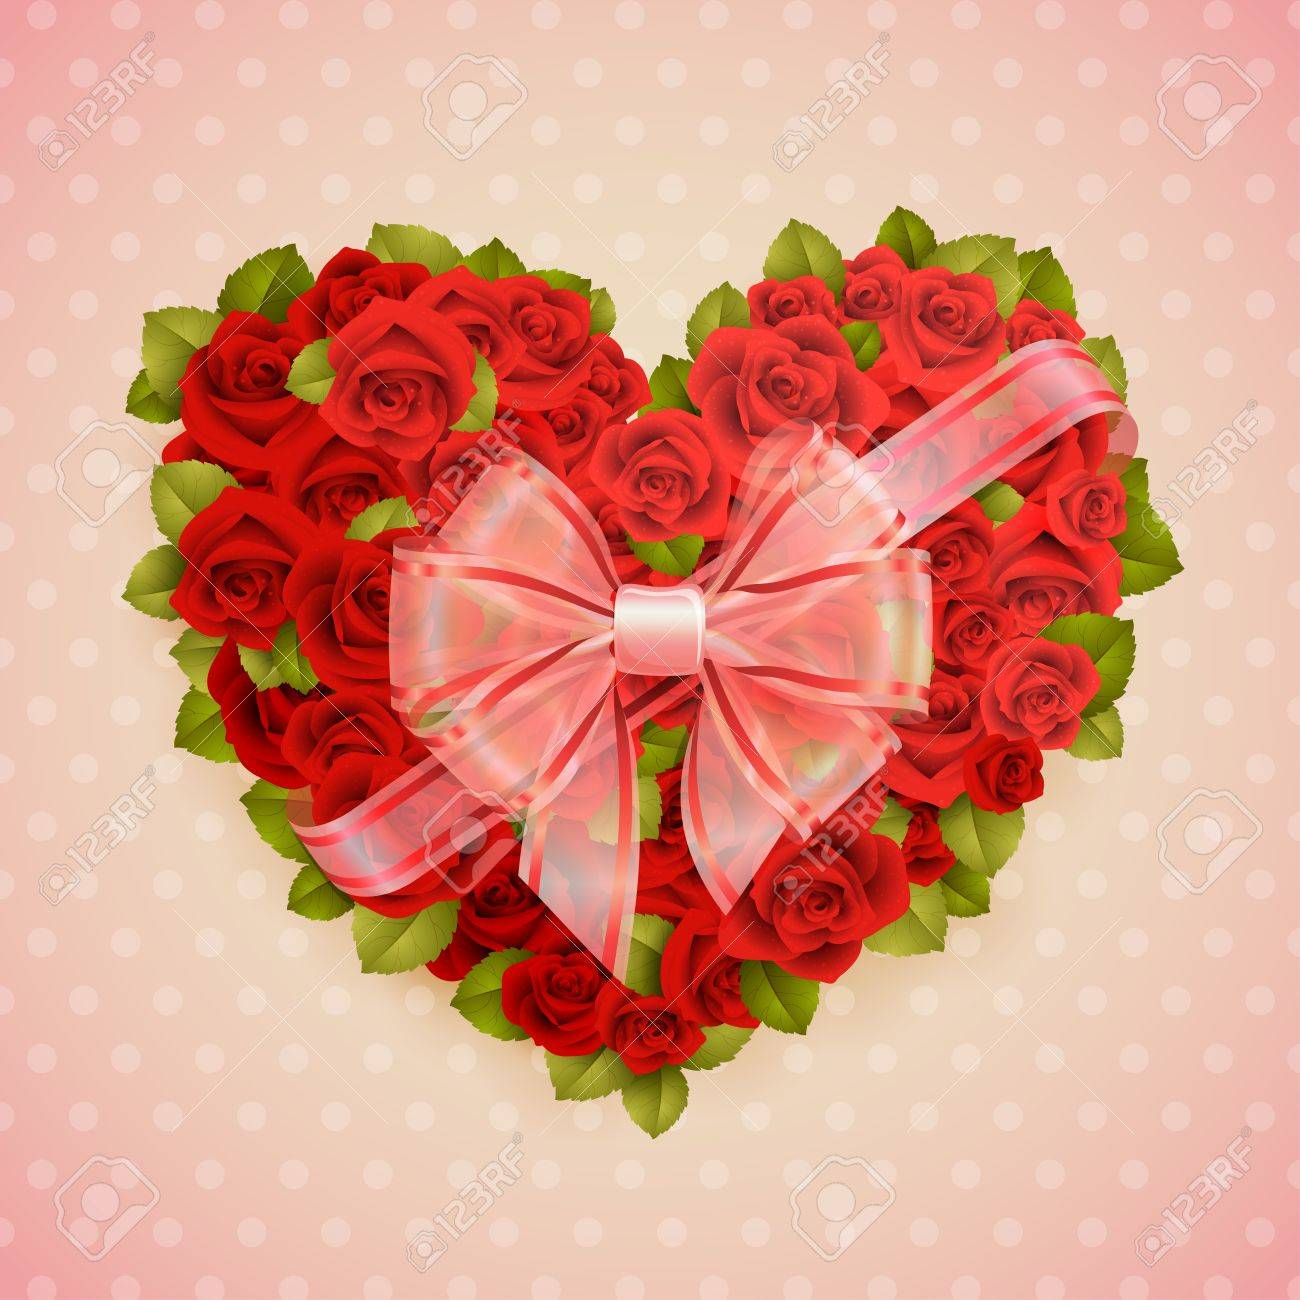 Valentine s Day card with roses heart and place for text Stock Vector - 14677993